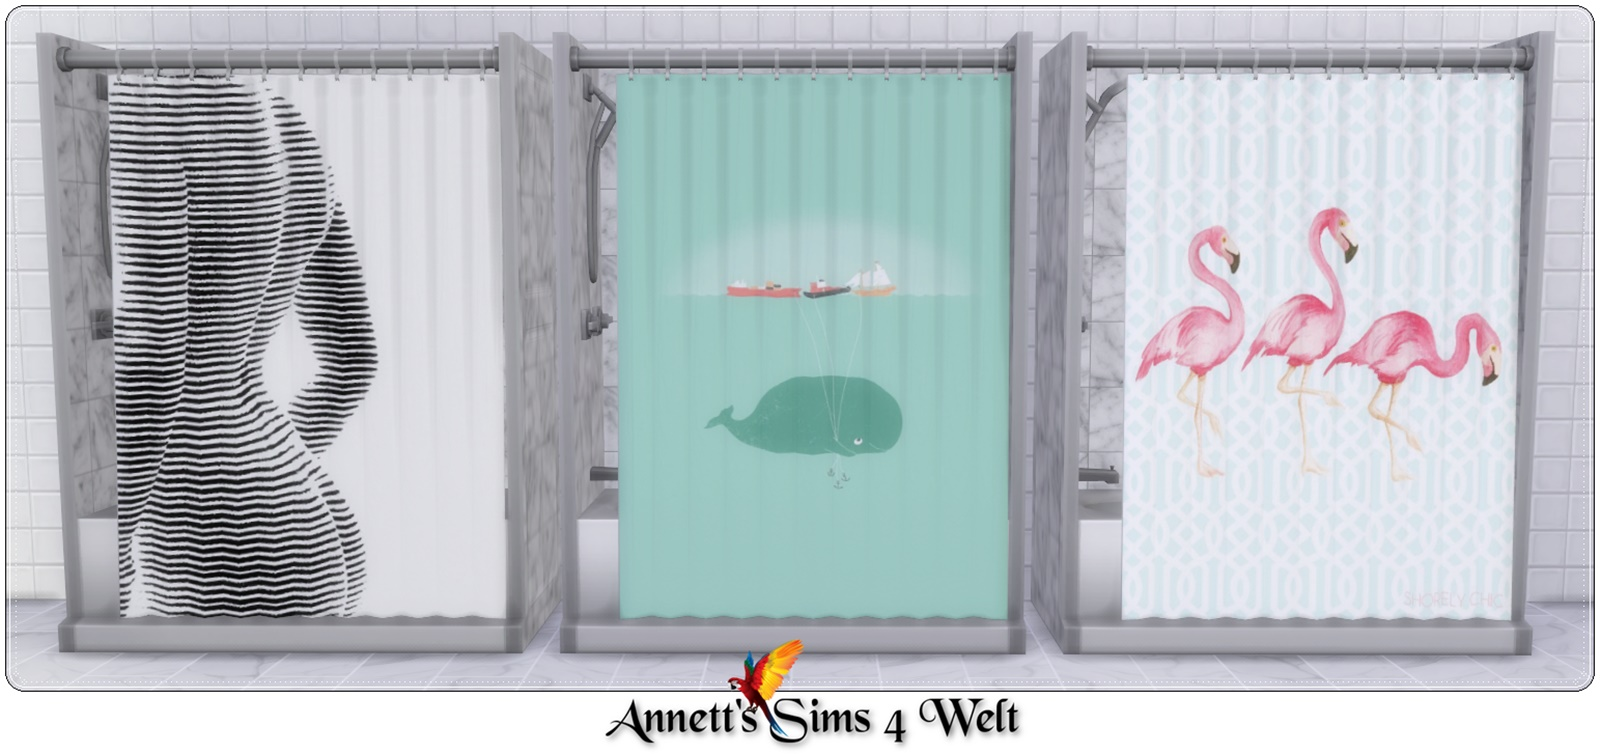 Annetts Sims 4 Welt Parenthood Shower